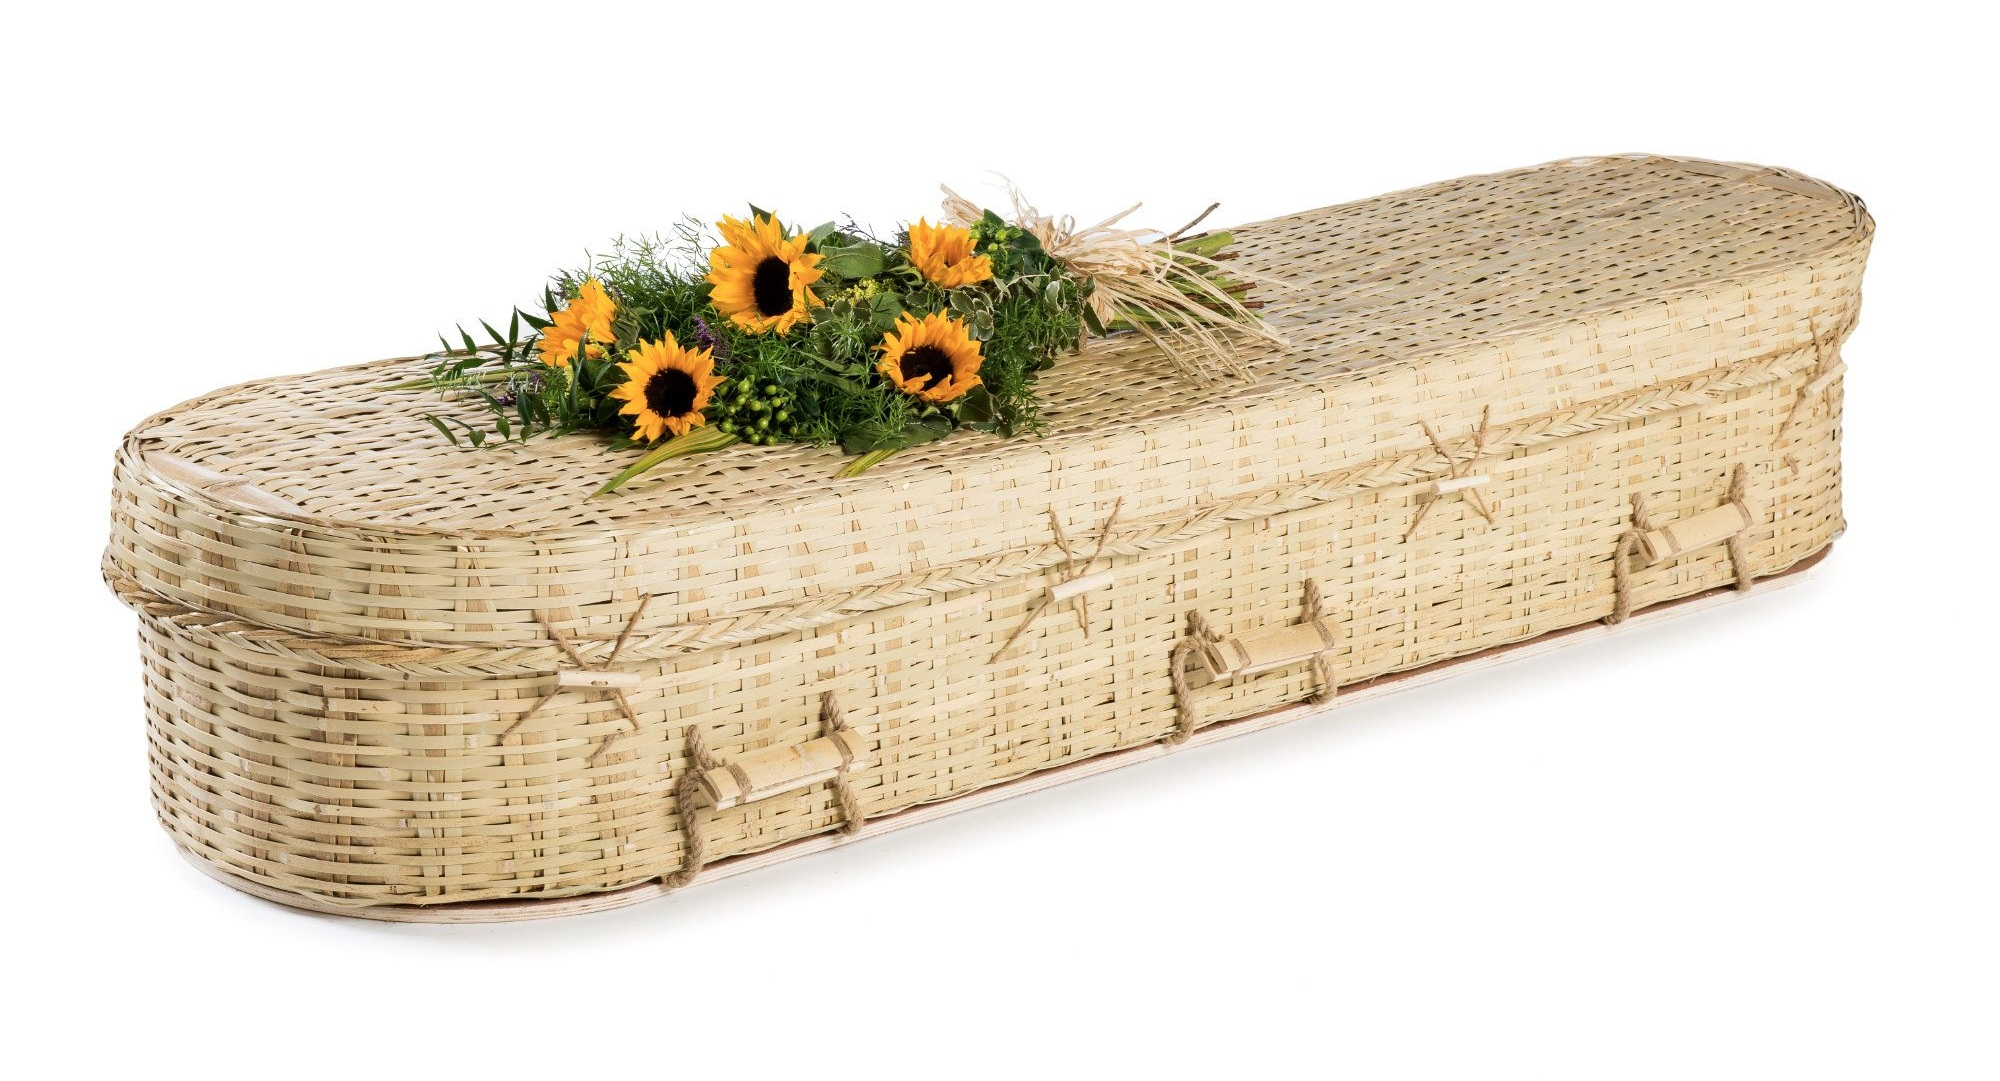 Bamboo Eco Coffin - Available from thinkwillow.com